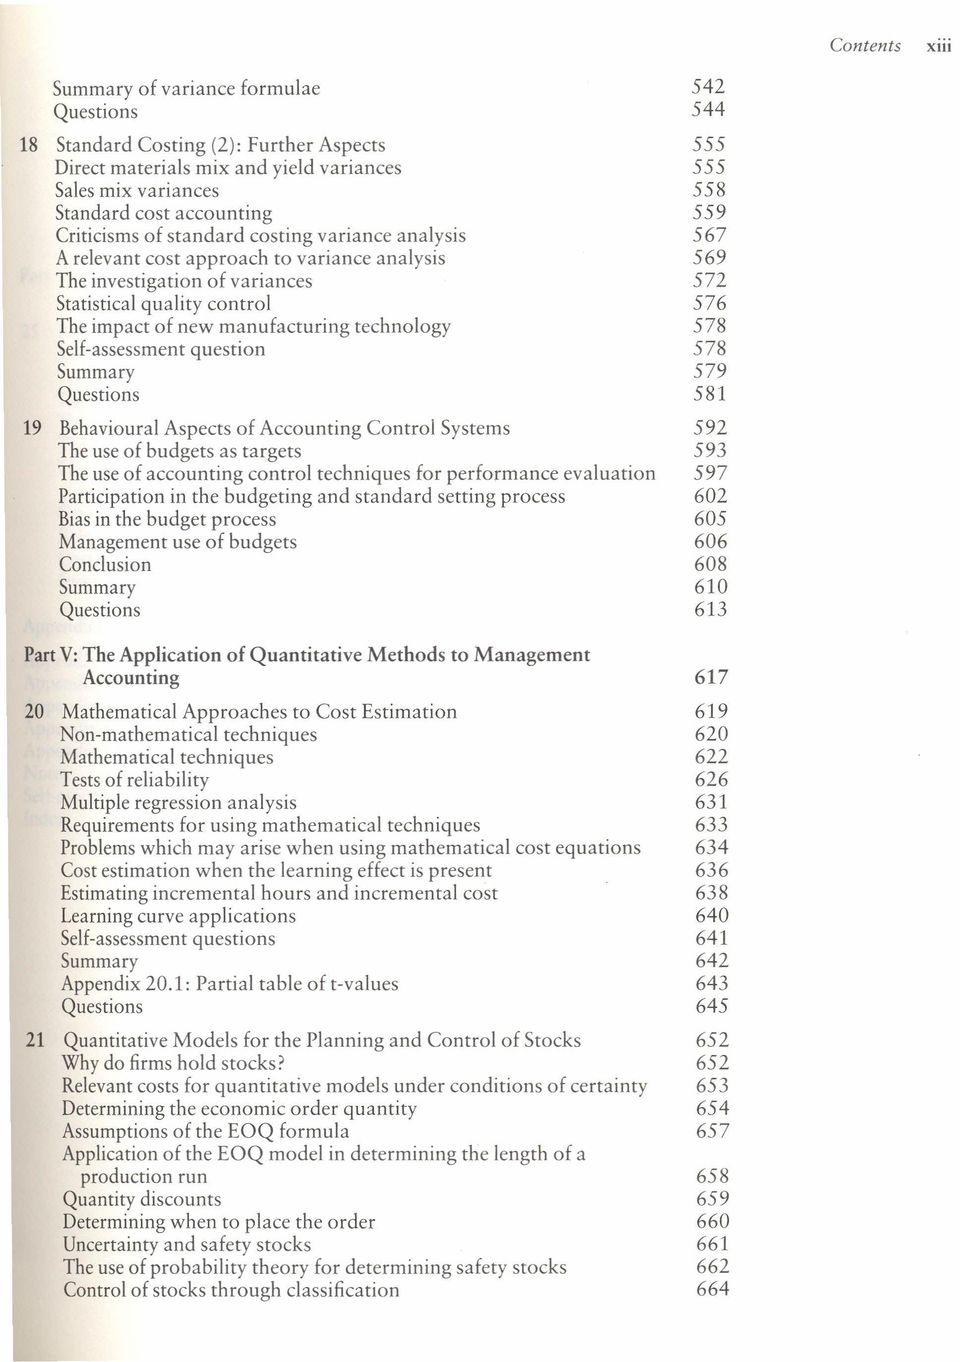 manufacturing technology 578 Self-assessment question 578 Summary 579 581 19 Behavioural Aspects of Accounting Control Systems 592 The use of budgets as targets 593 The use of accounting control